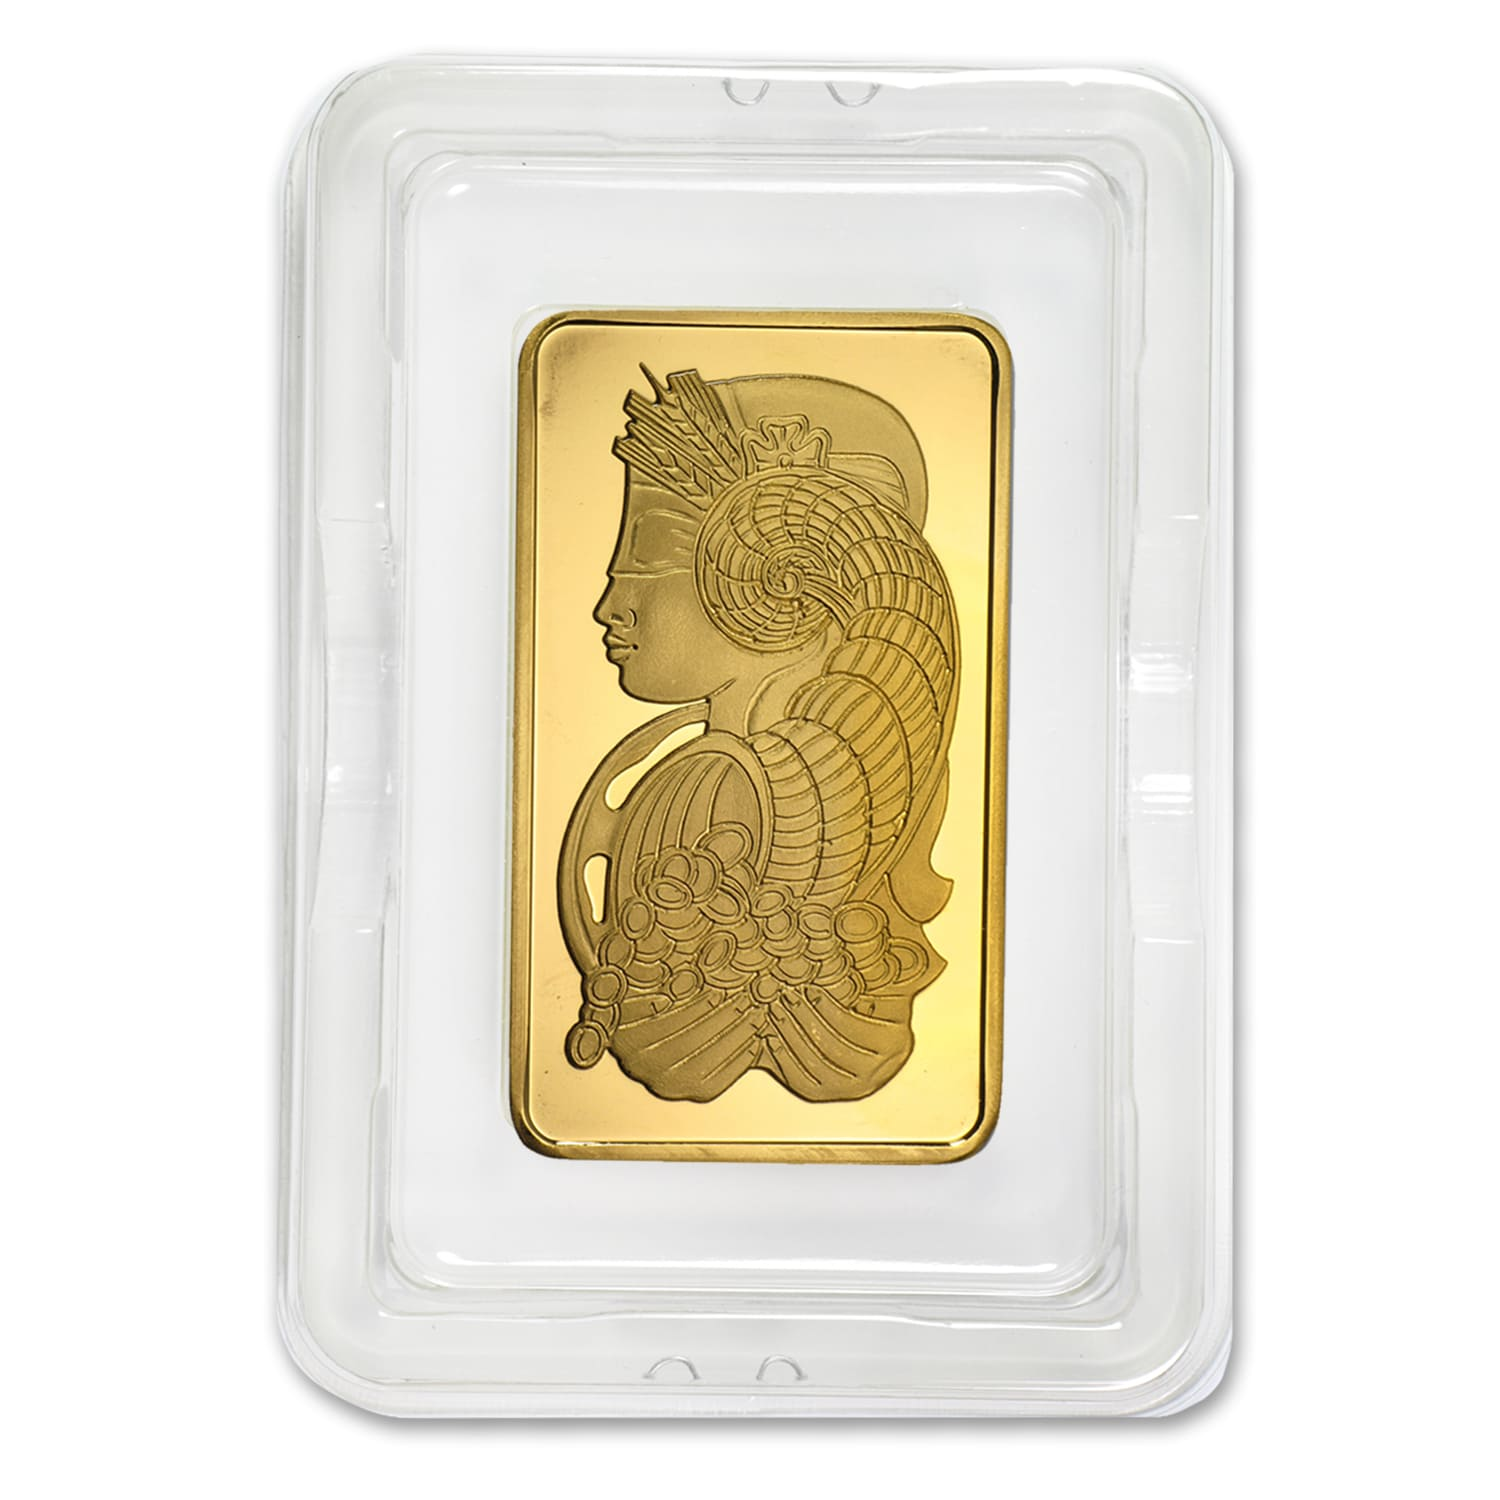 5 oz Gold Bars - Pamp Suisse (w/Assay)